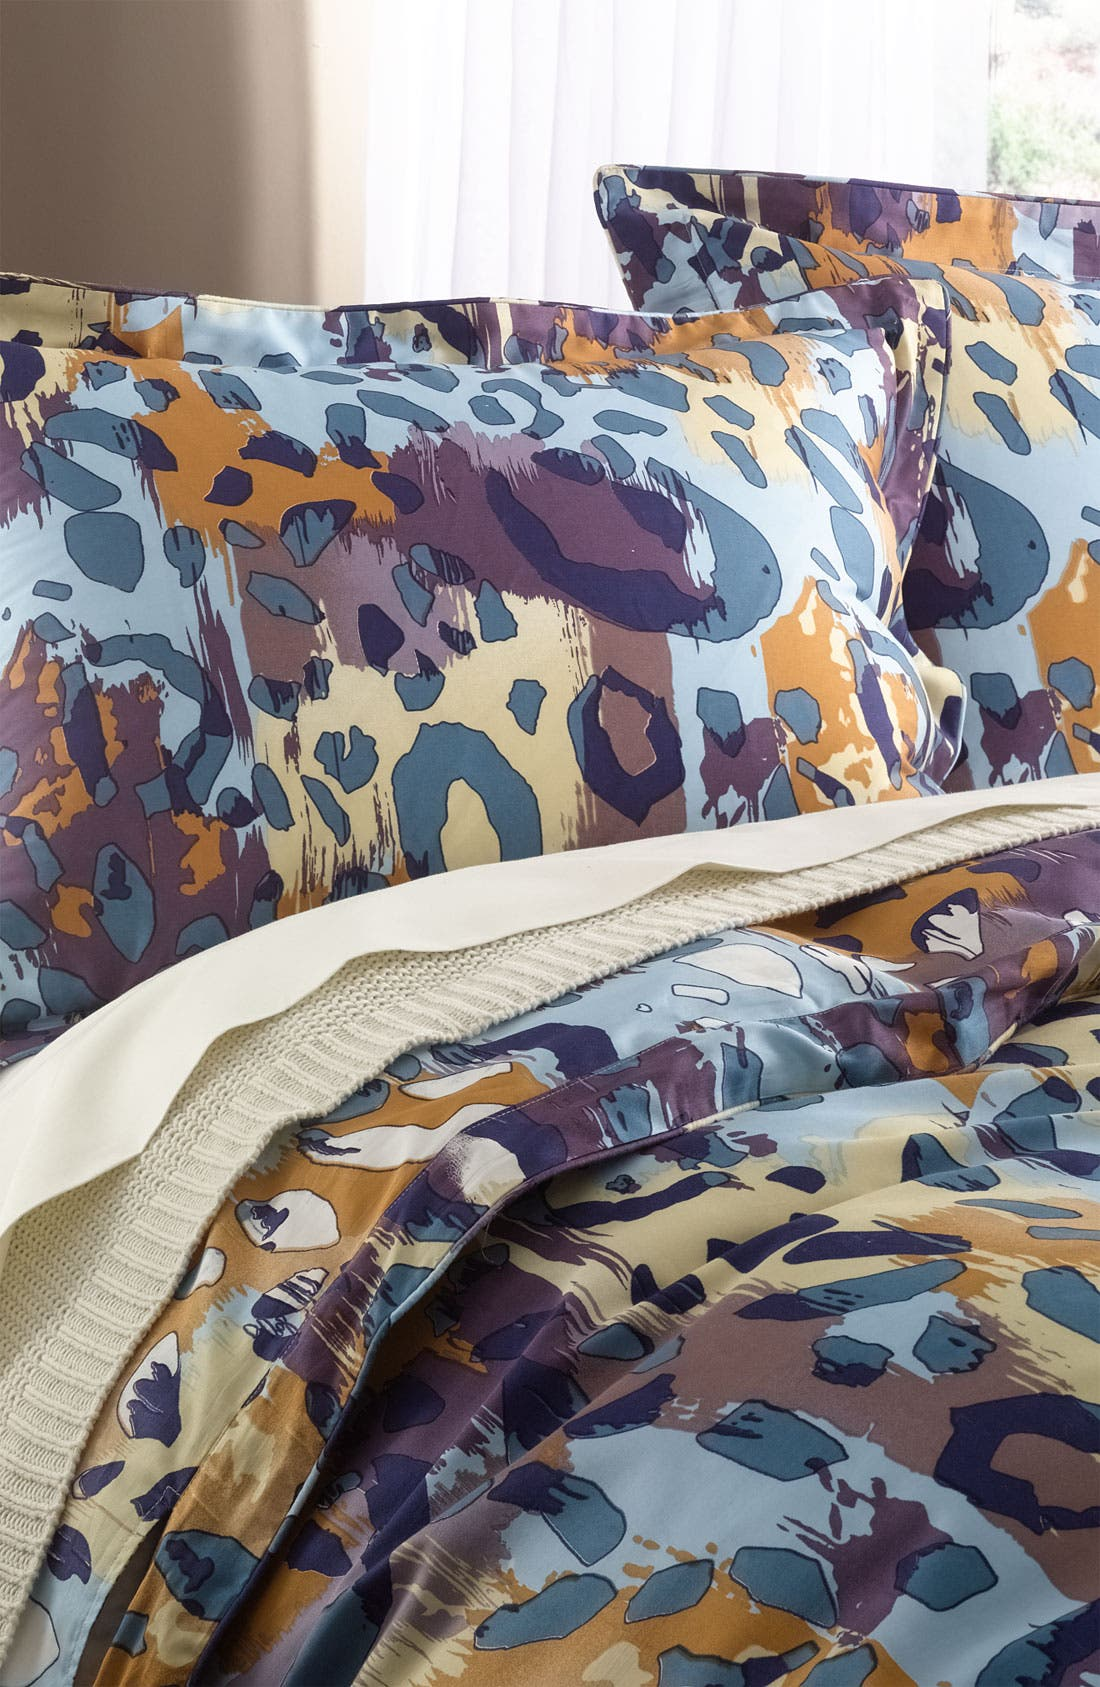 Alternate Image 1 Selected - Diane von Furstenberg 'Paper Cheetah' 300 Thread Count Pillow Sham